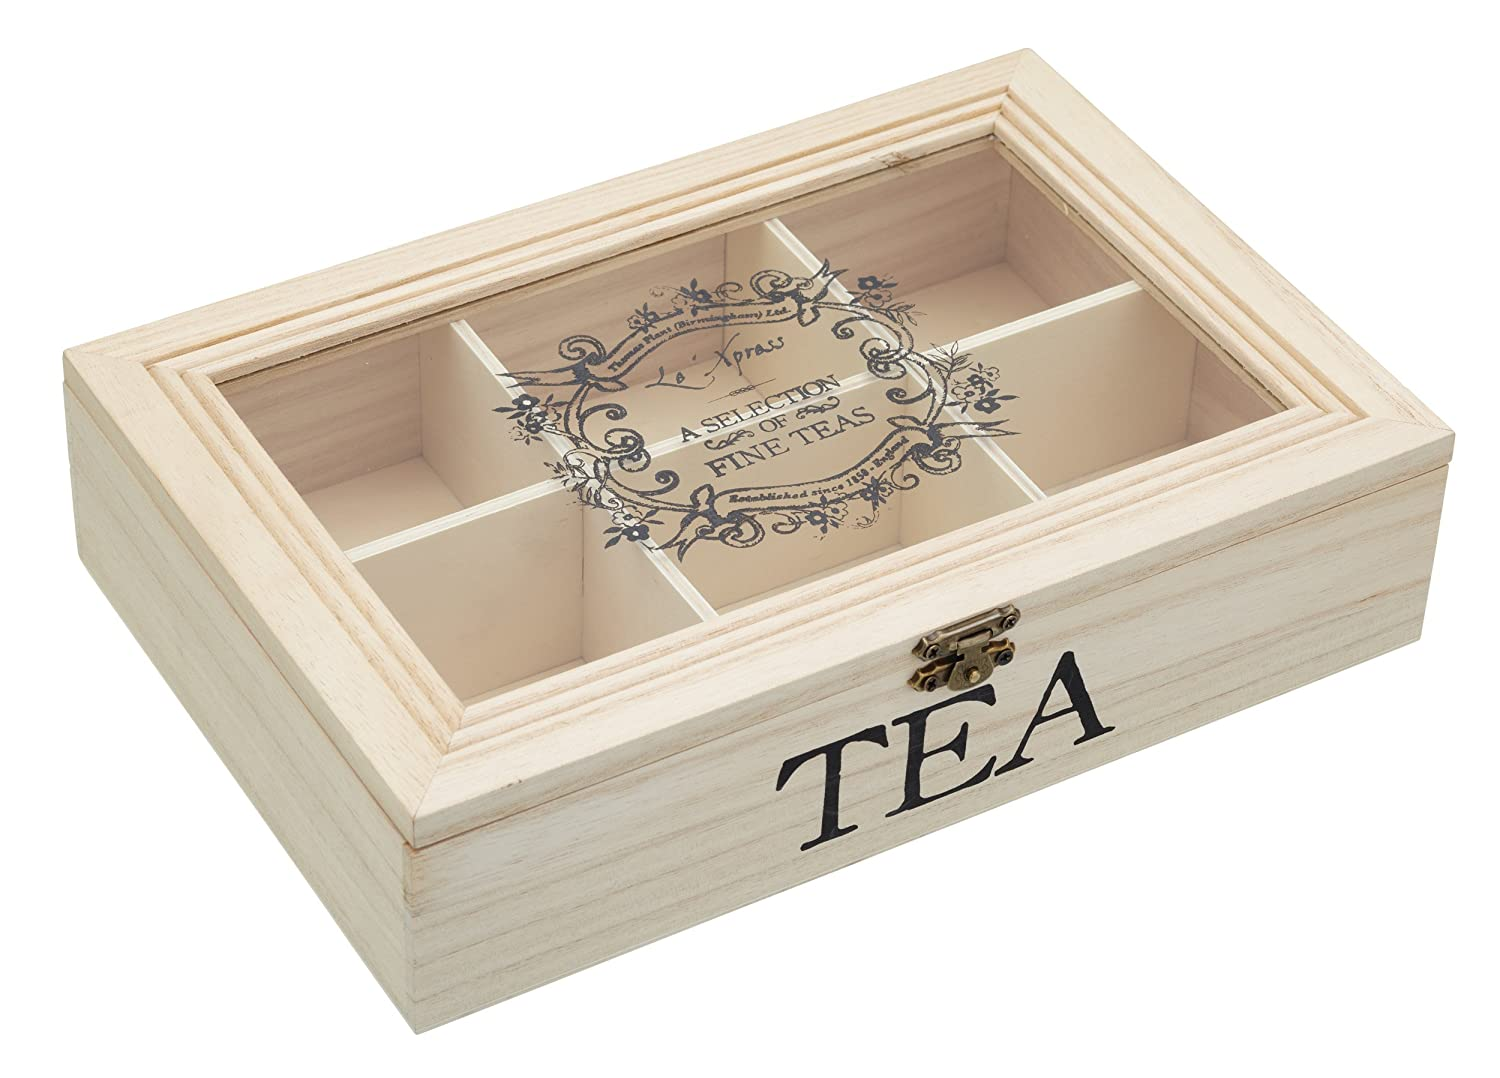 KitchenCraft Le'Xpress Wooden Tea Chest (Box with 6 Compartments), 26 x 17 x 6 cm by KitchenCraft Kitchen Craft Le'Xpress KCLXTEABOX